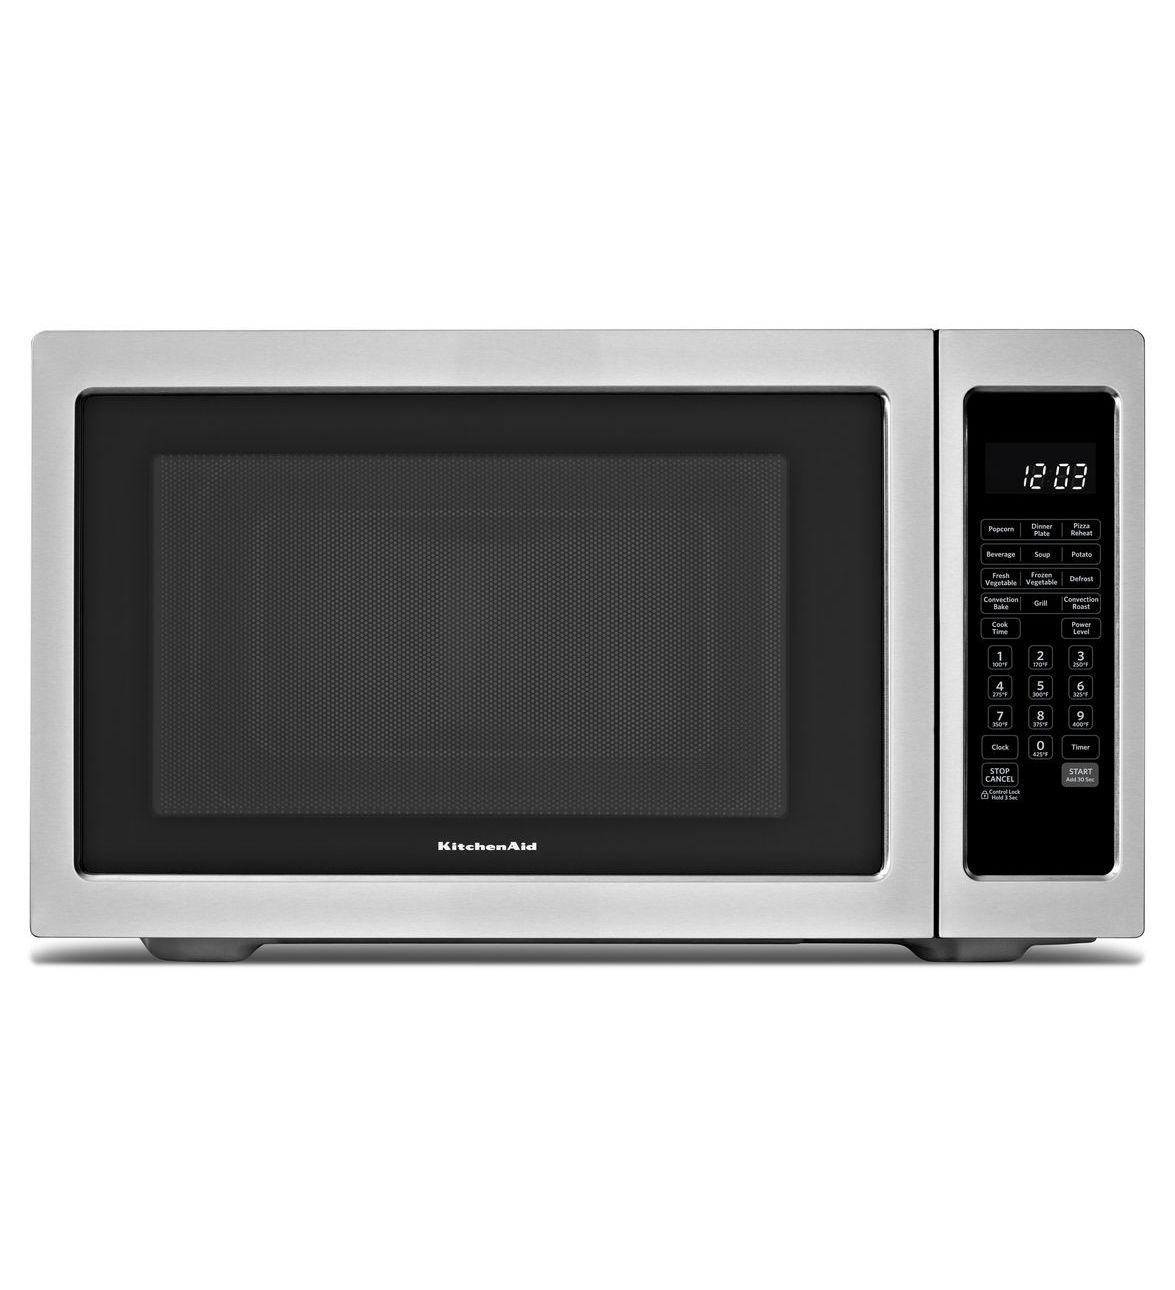 Kitchenaid 1200 Watt Countertop Convection Microwave Oven Architect Series Ii Countertop Microwave Countertop Microwave Oven Stainless Steel Microwave